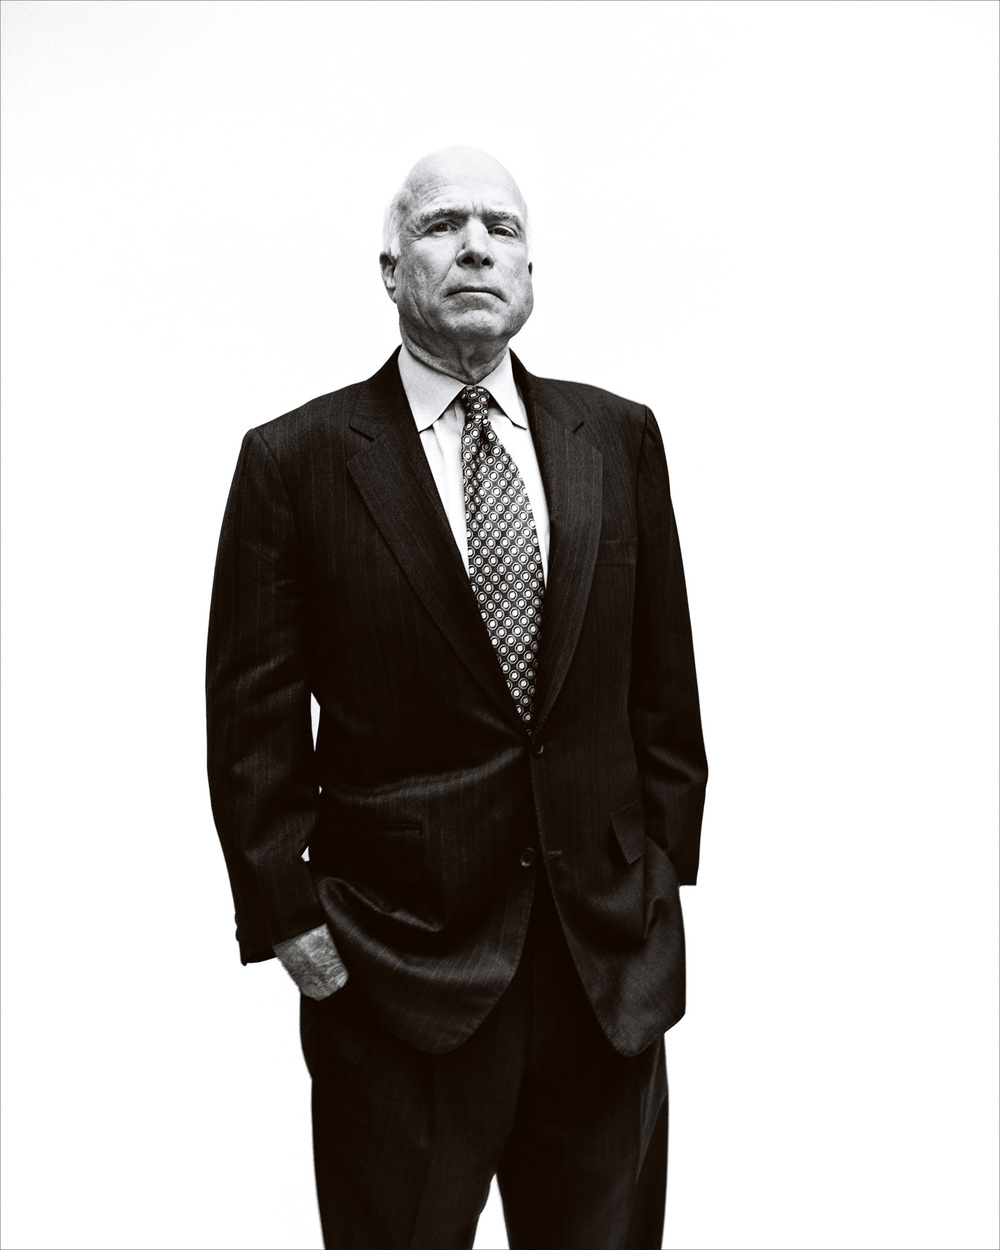 John McCain - Washington, D.C.